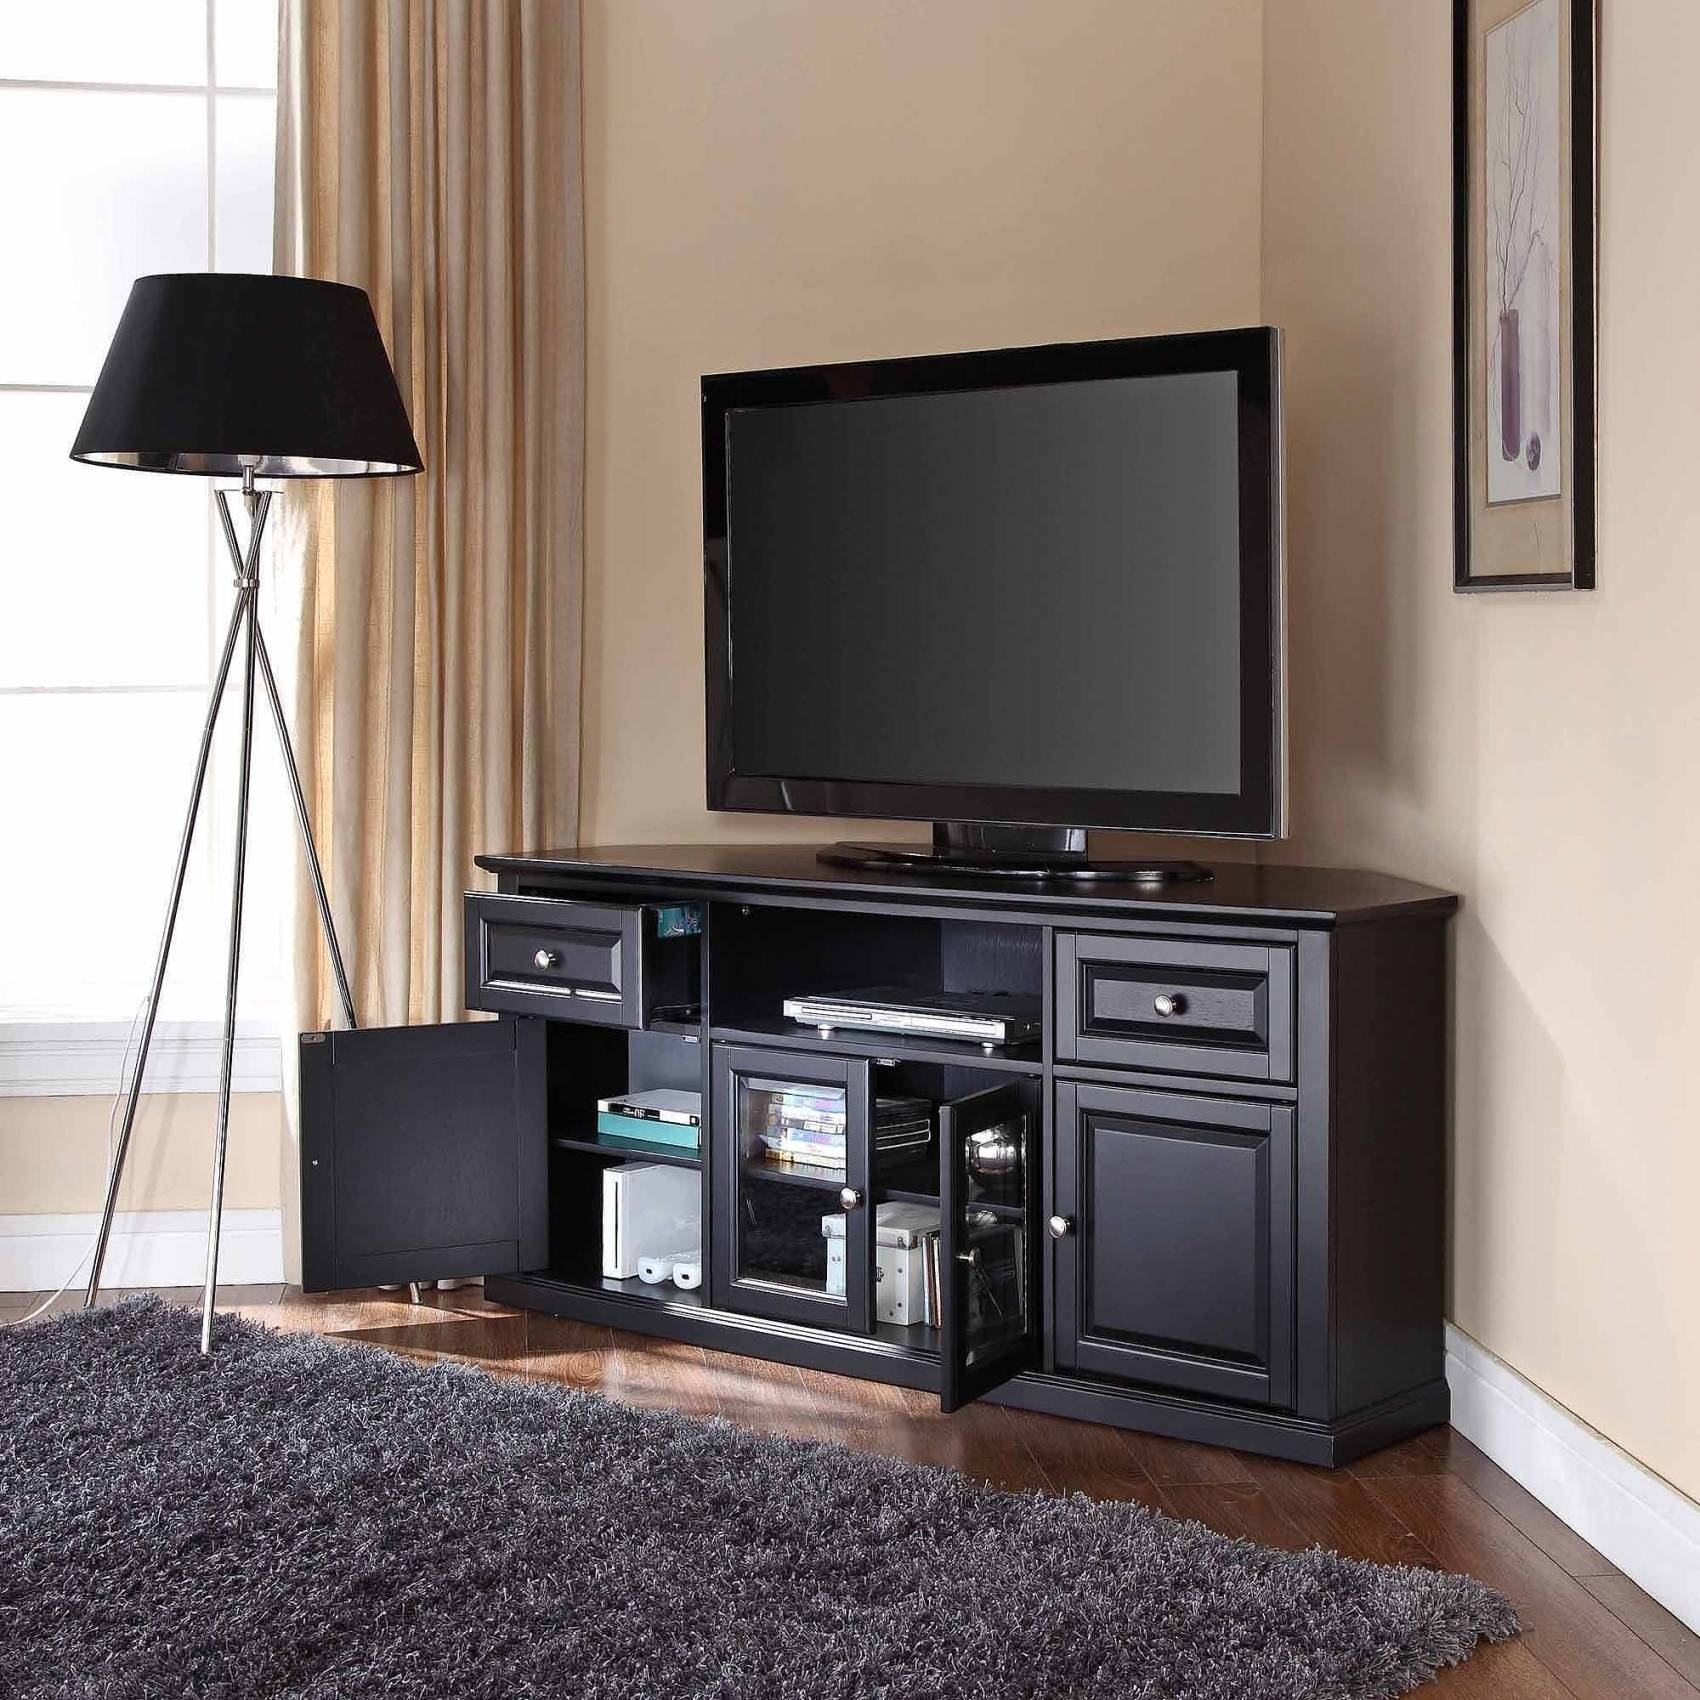 Modern Tv Stands Up To 60 Inches Fresh | Vgmnation Within Modern Tv Stands For 60 Inch Tvs (Photo 3 of 15)